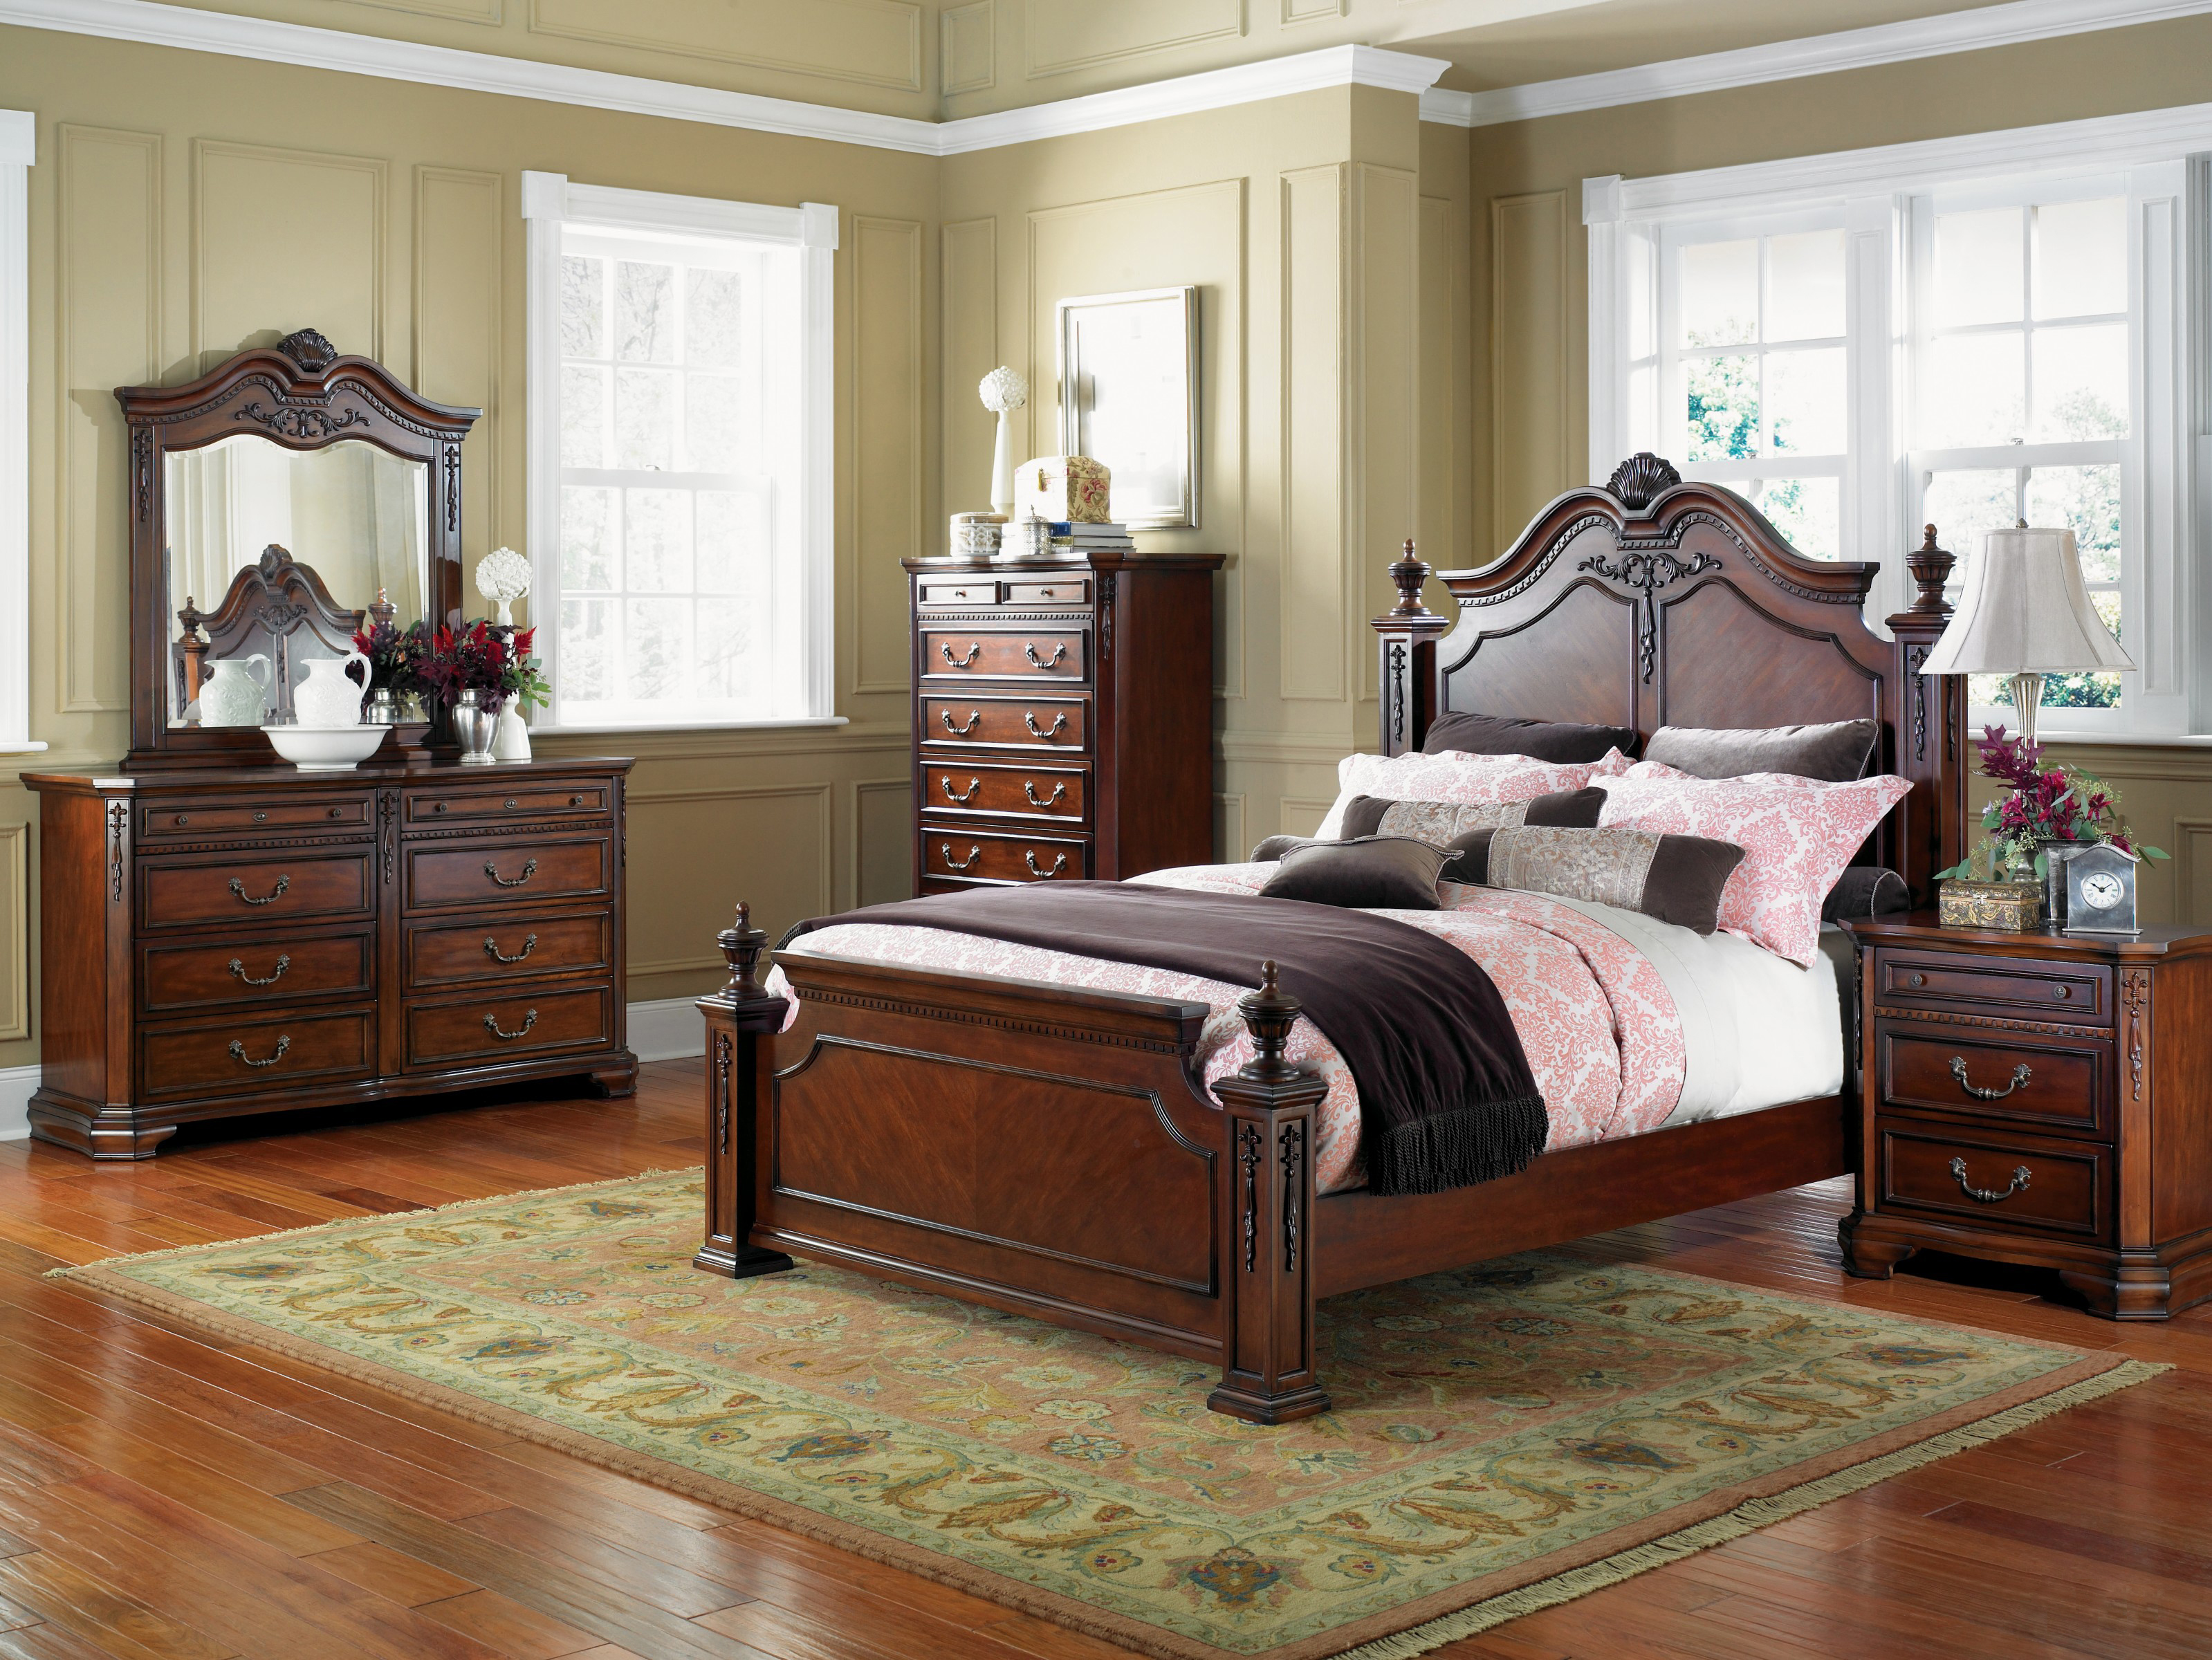 Incredible Bedroom Furniture 3198 x 2400 · 3937 kB · jpeg